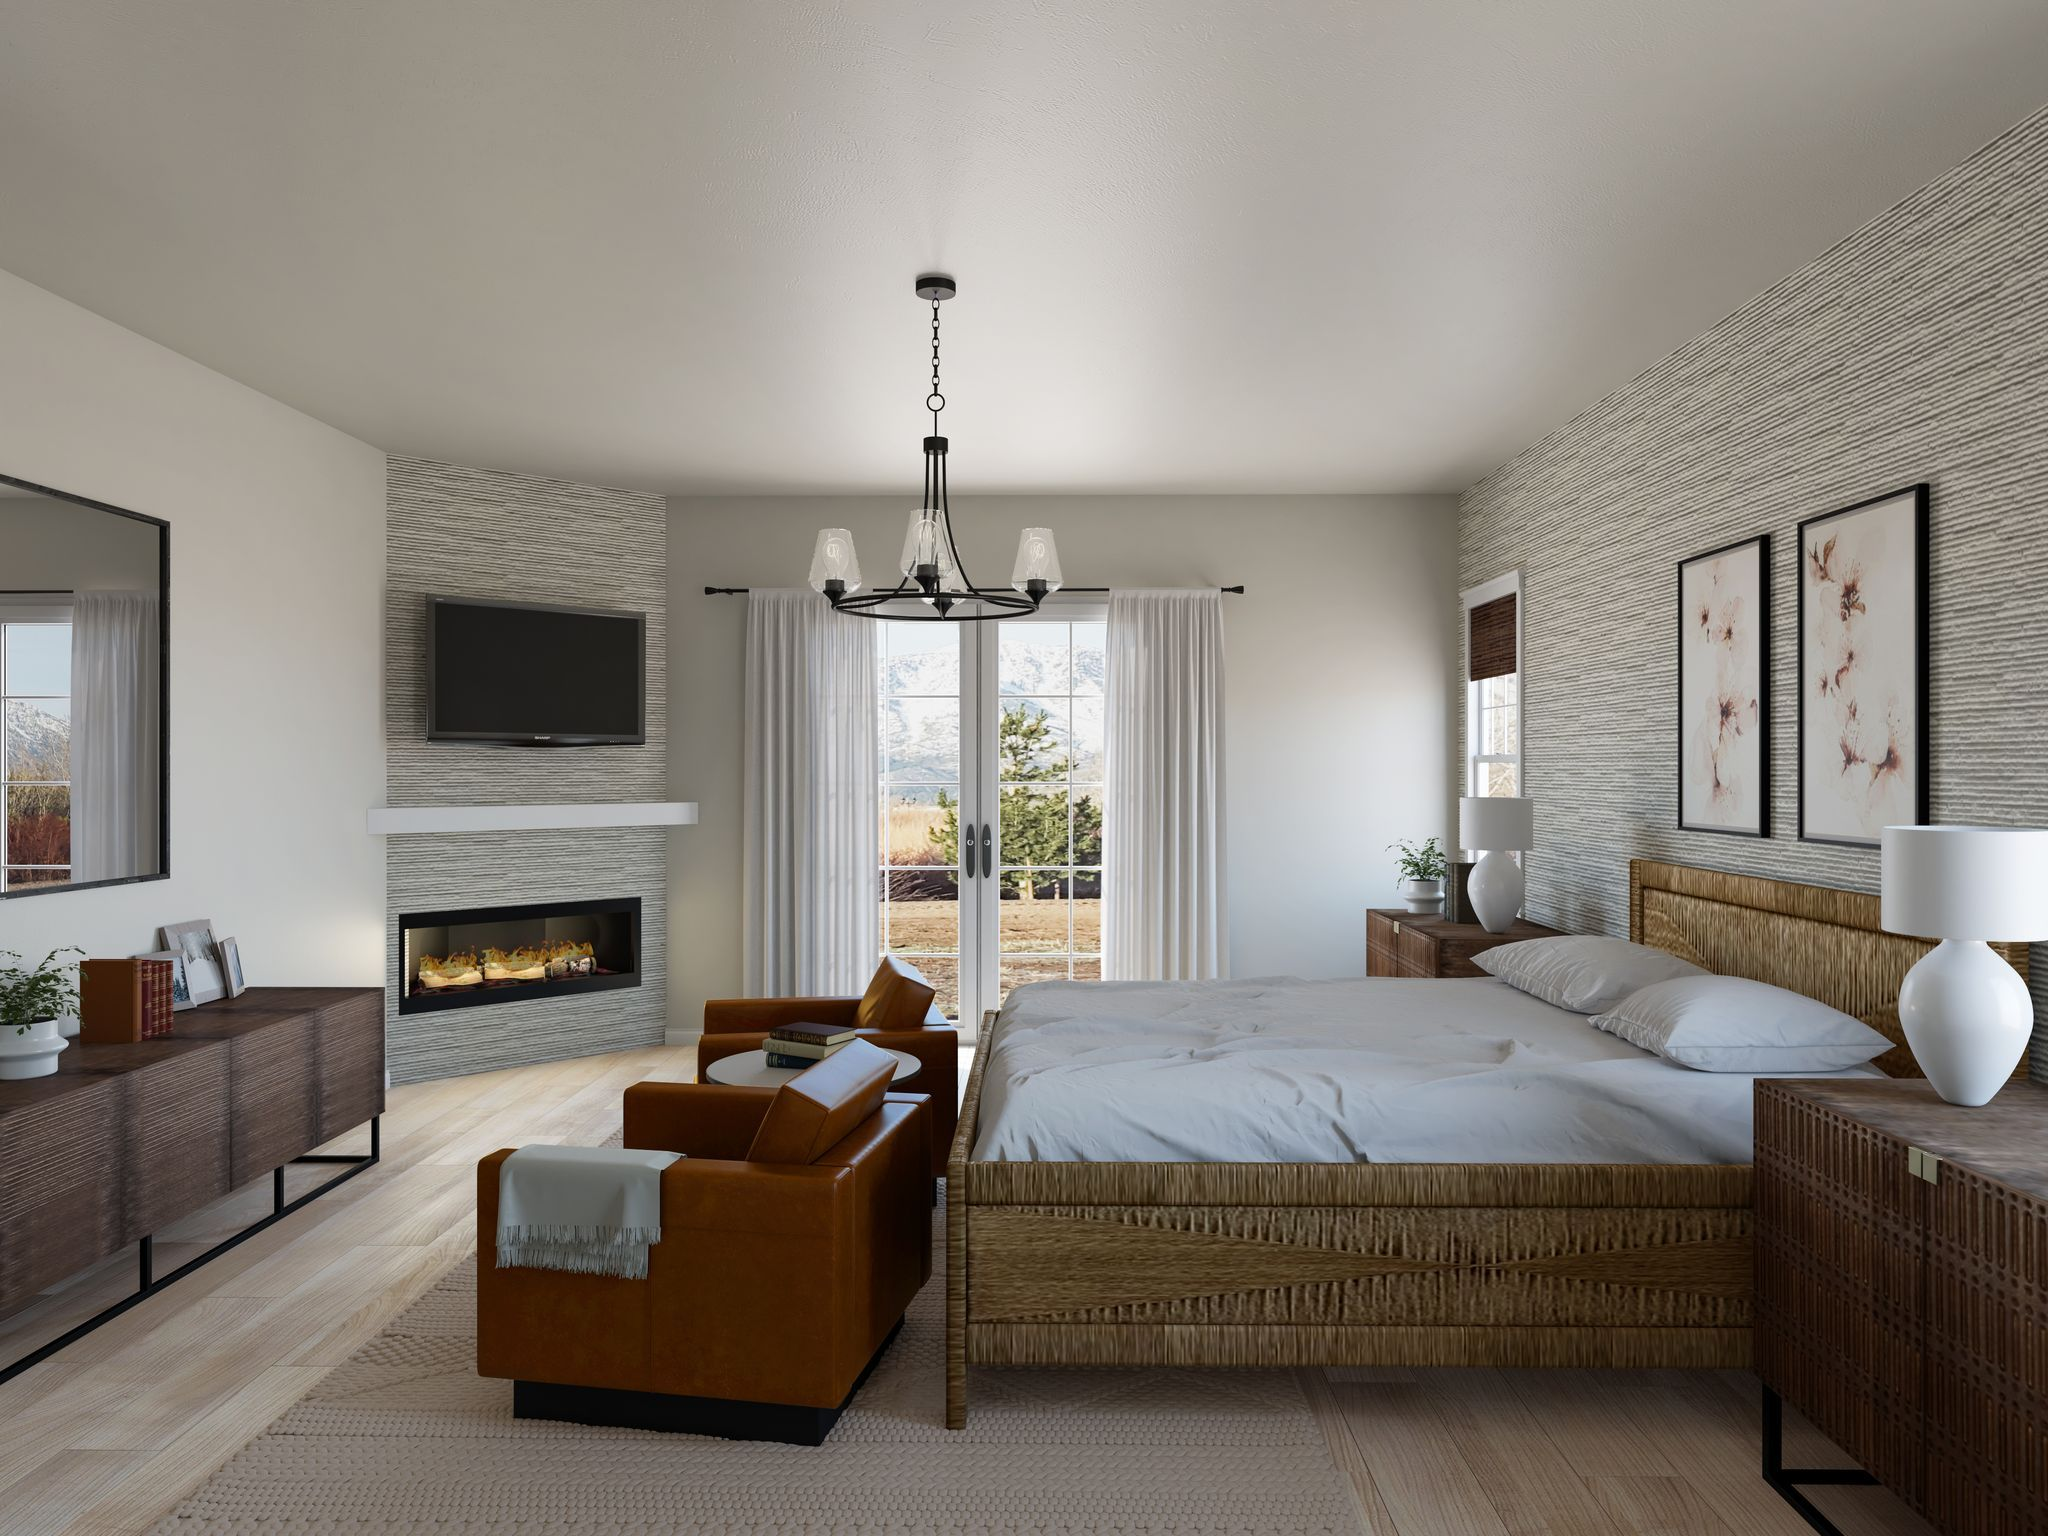 Bedroom featured in the Residence 2 By Santa Ynez Valley Construction in Reno, NV